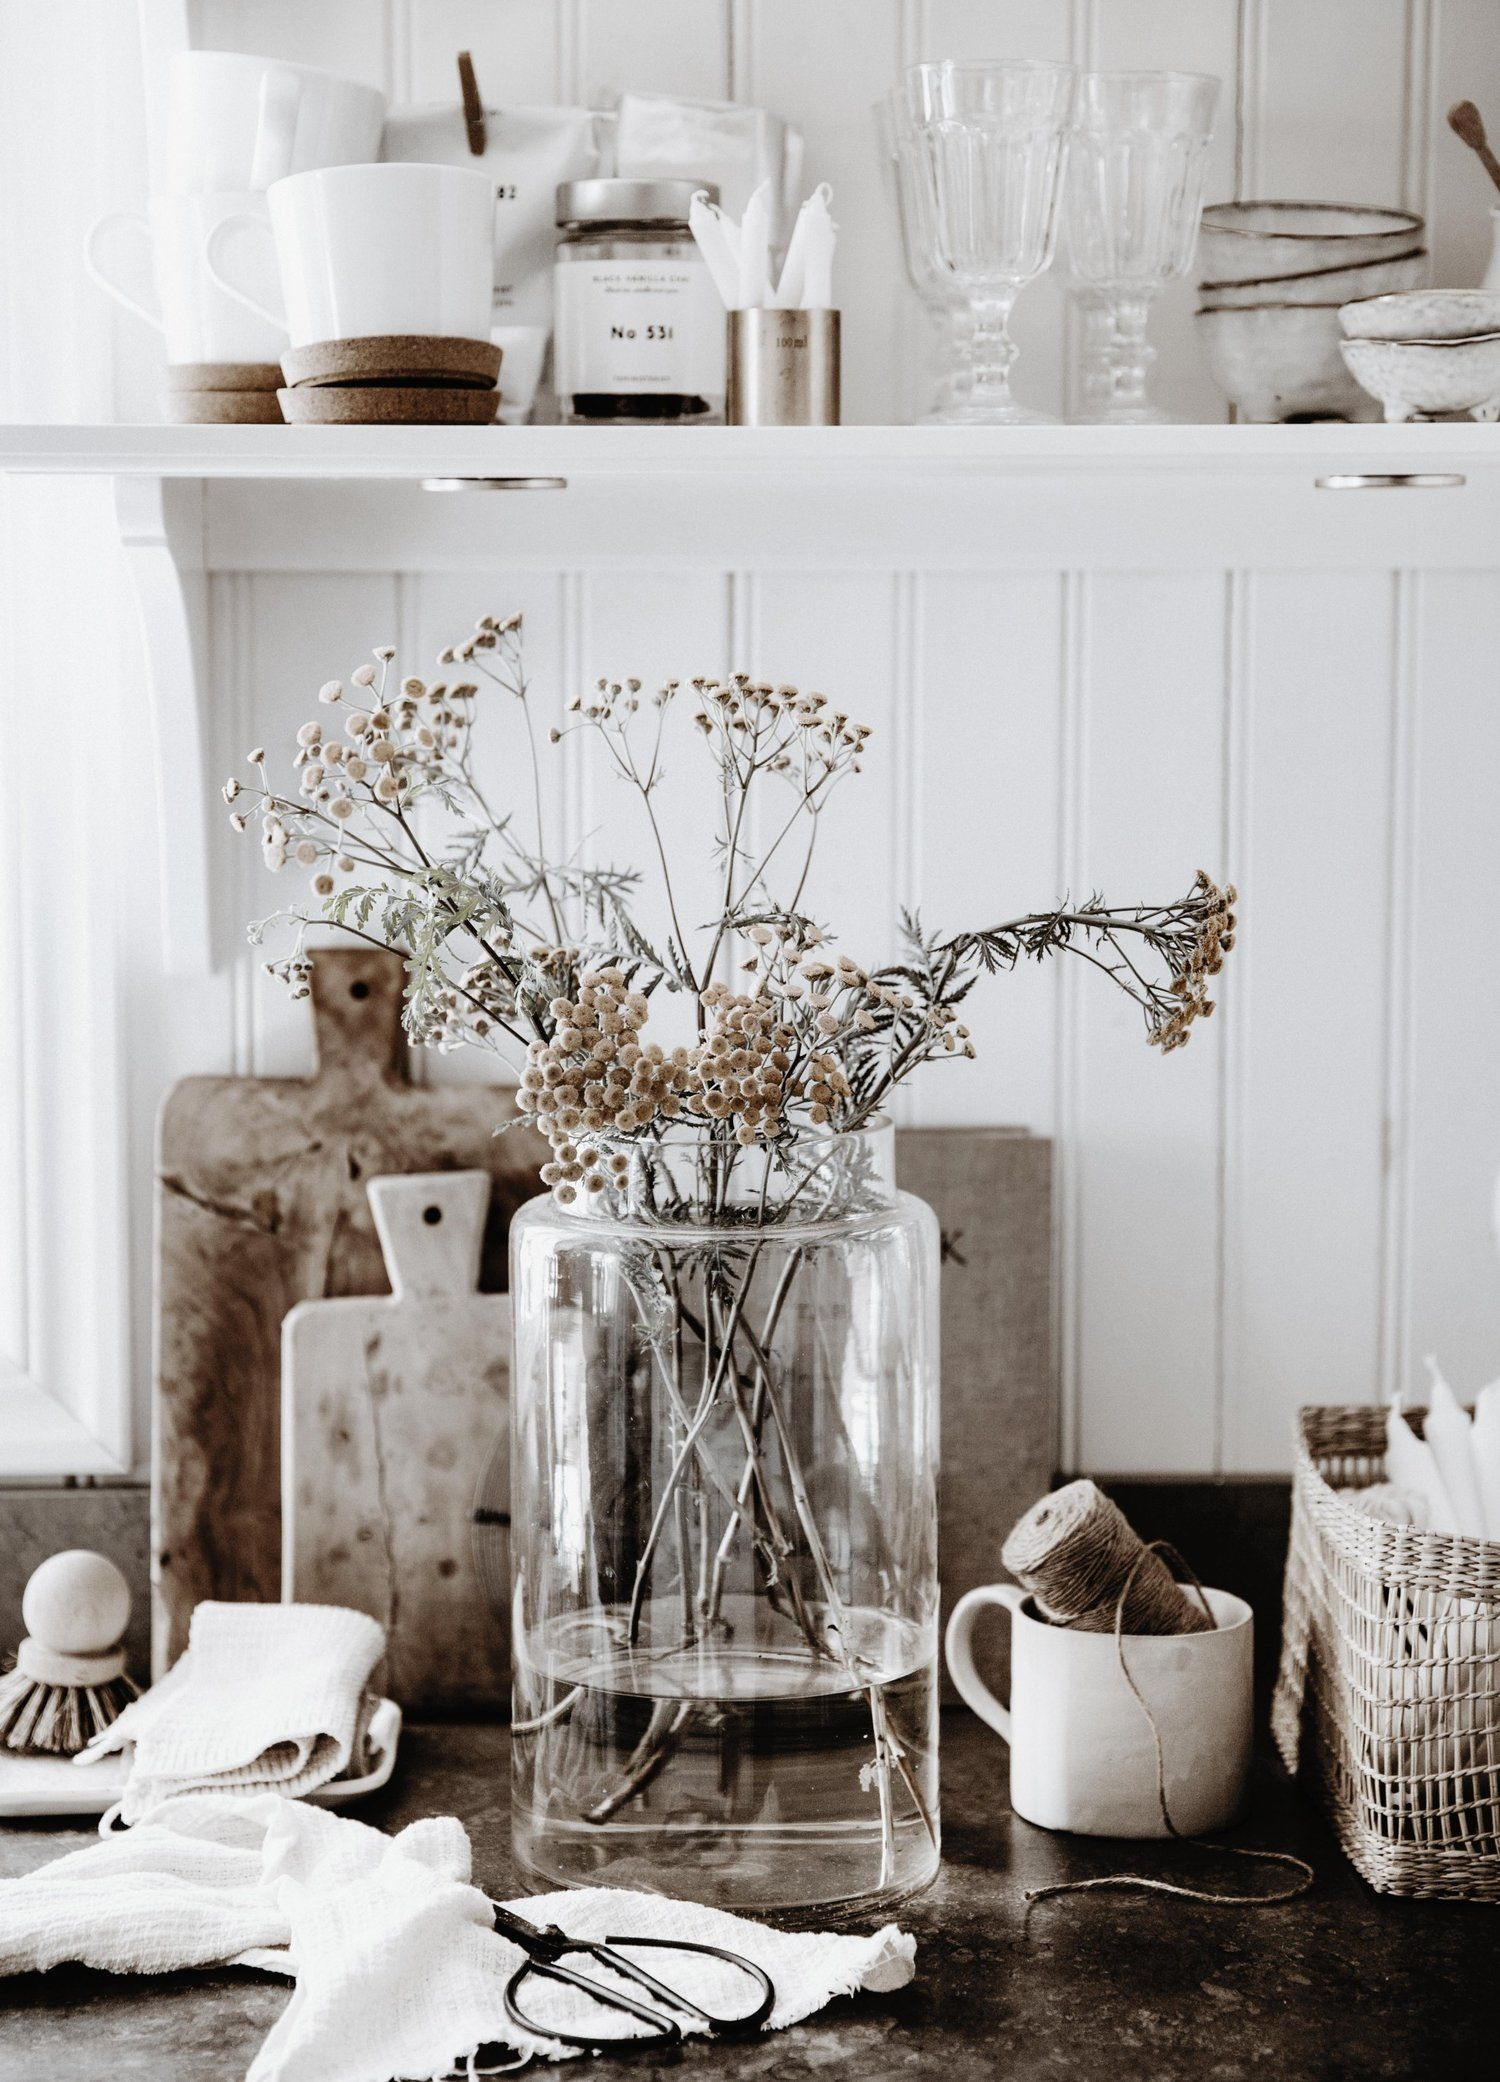 A Lovely Scandinavian Bohemian Home Decor8 Scandinavian Style Home Decor Home Decor